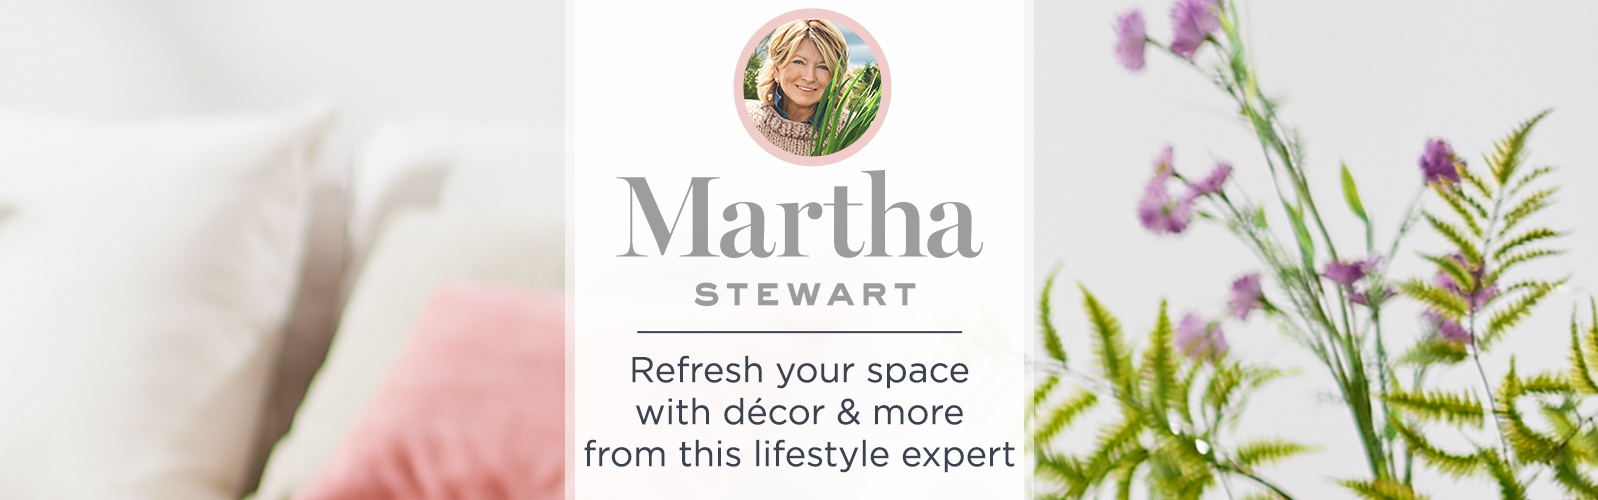 Martha Stewart - Refresh your space with décor & more from this lifestyle expert